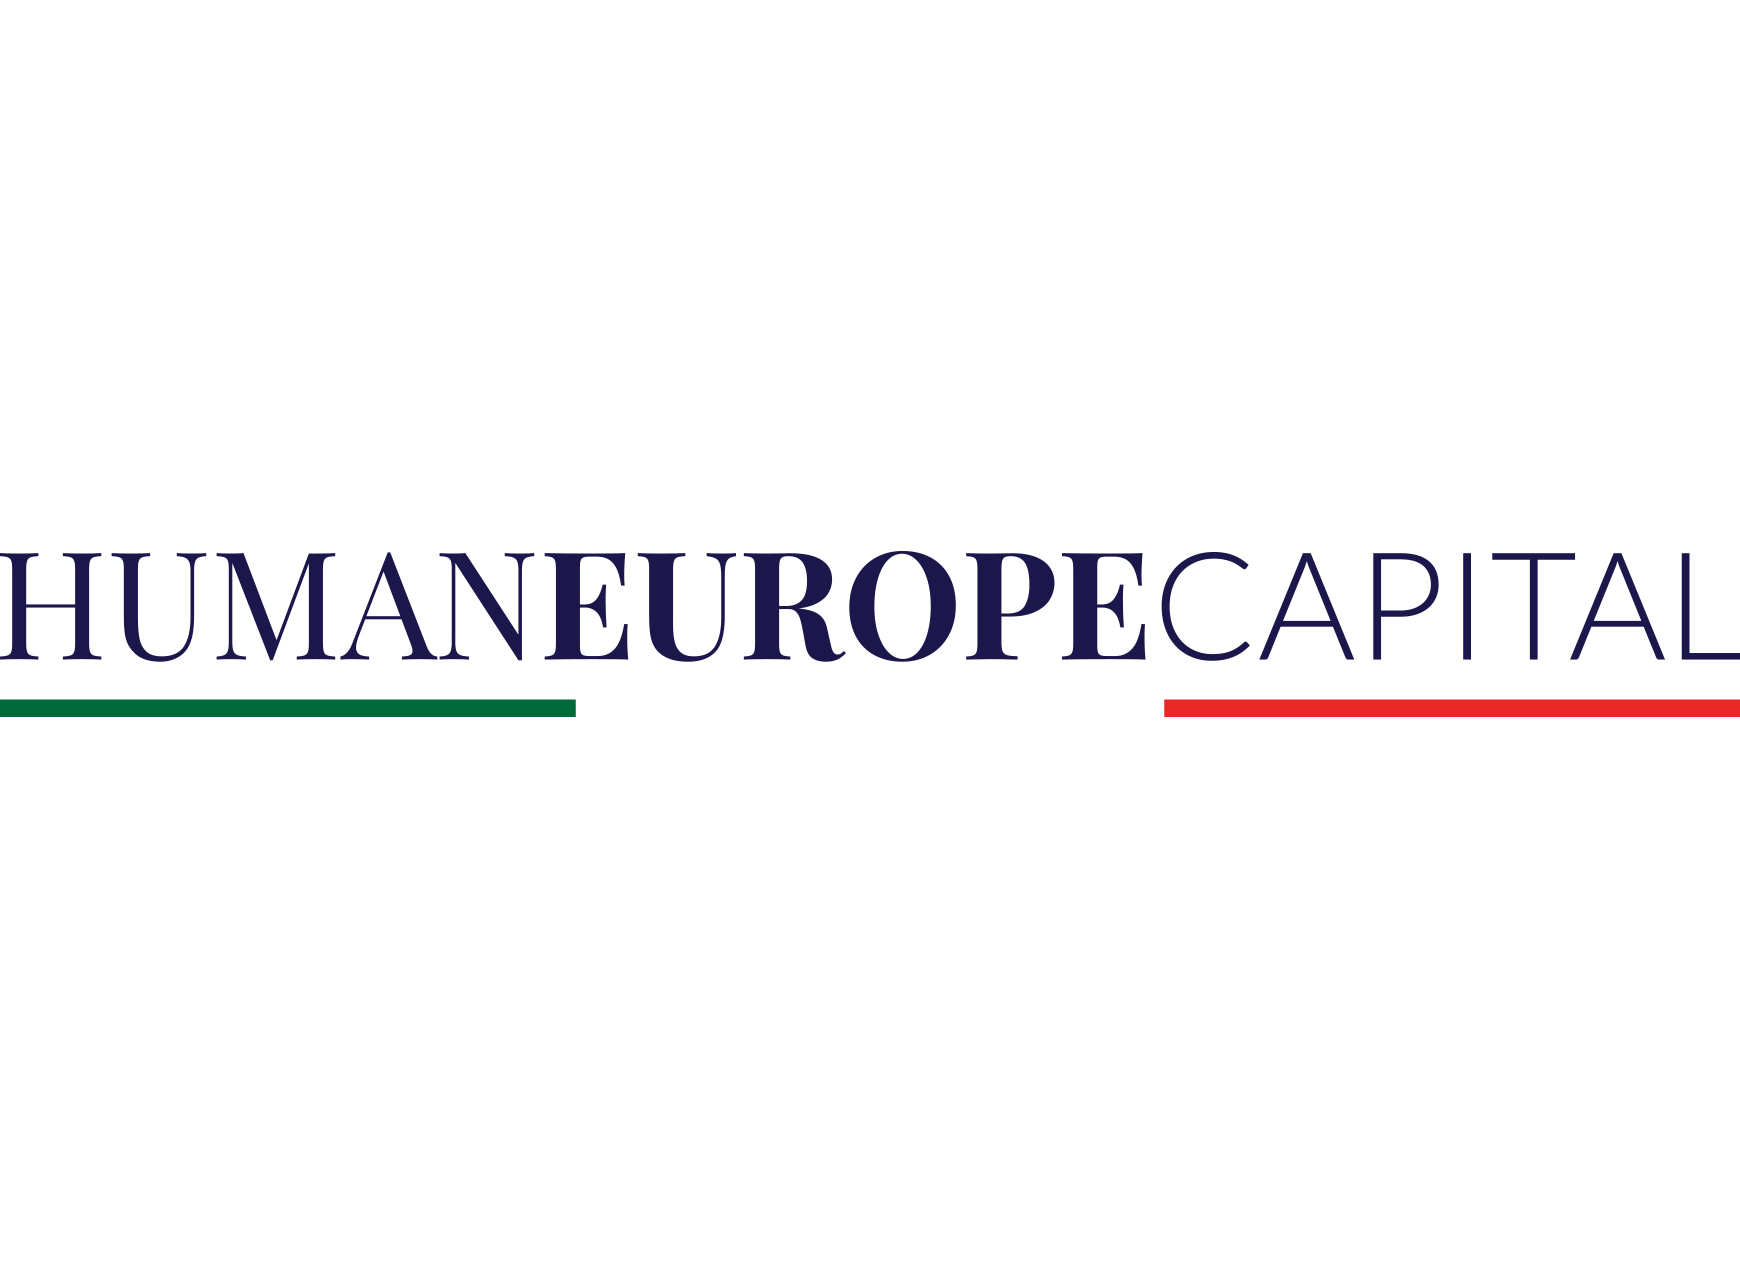 HumanEuropeCapital on Air